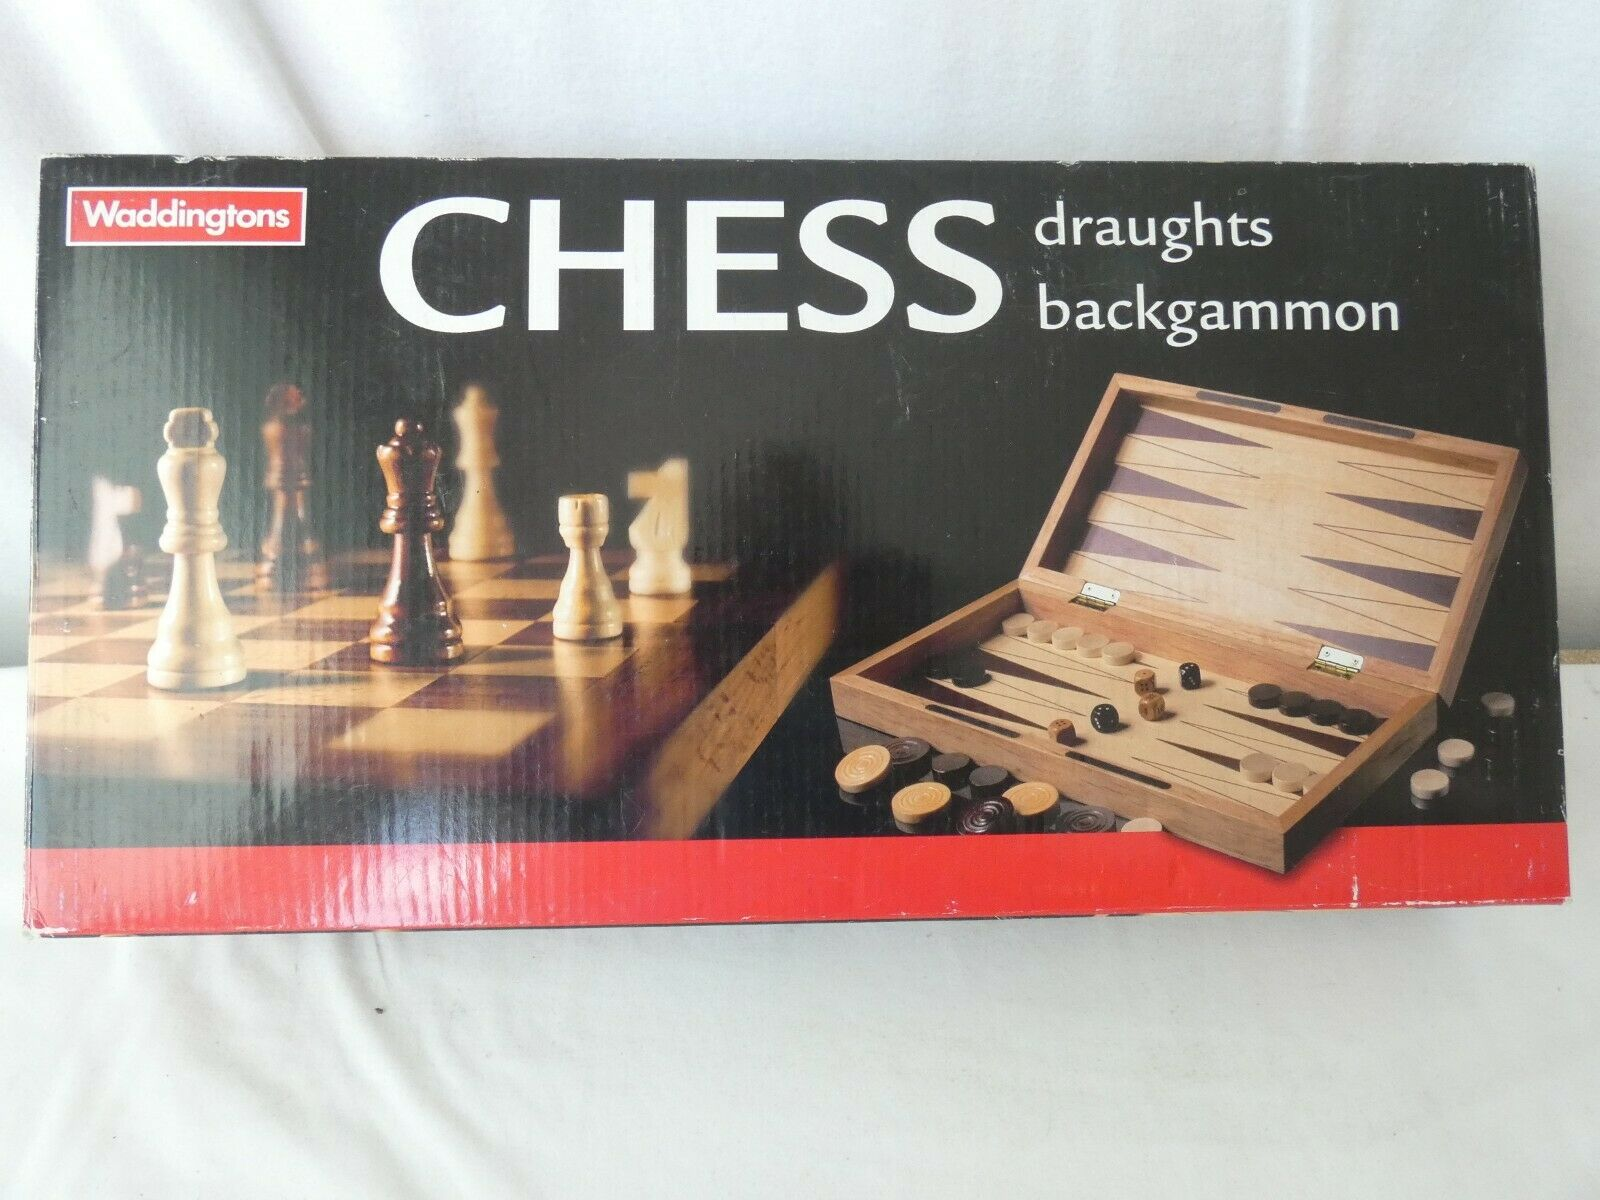 Wooden chess draughts backgammon board games by Waddingtons 3 in 1